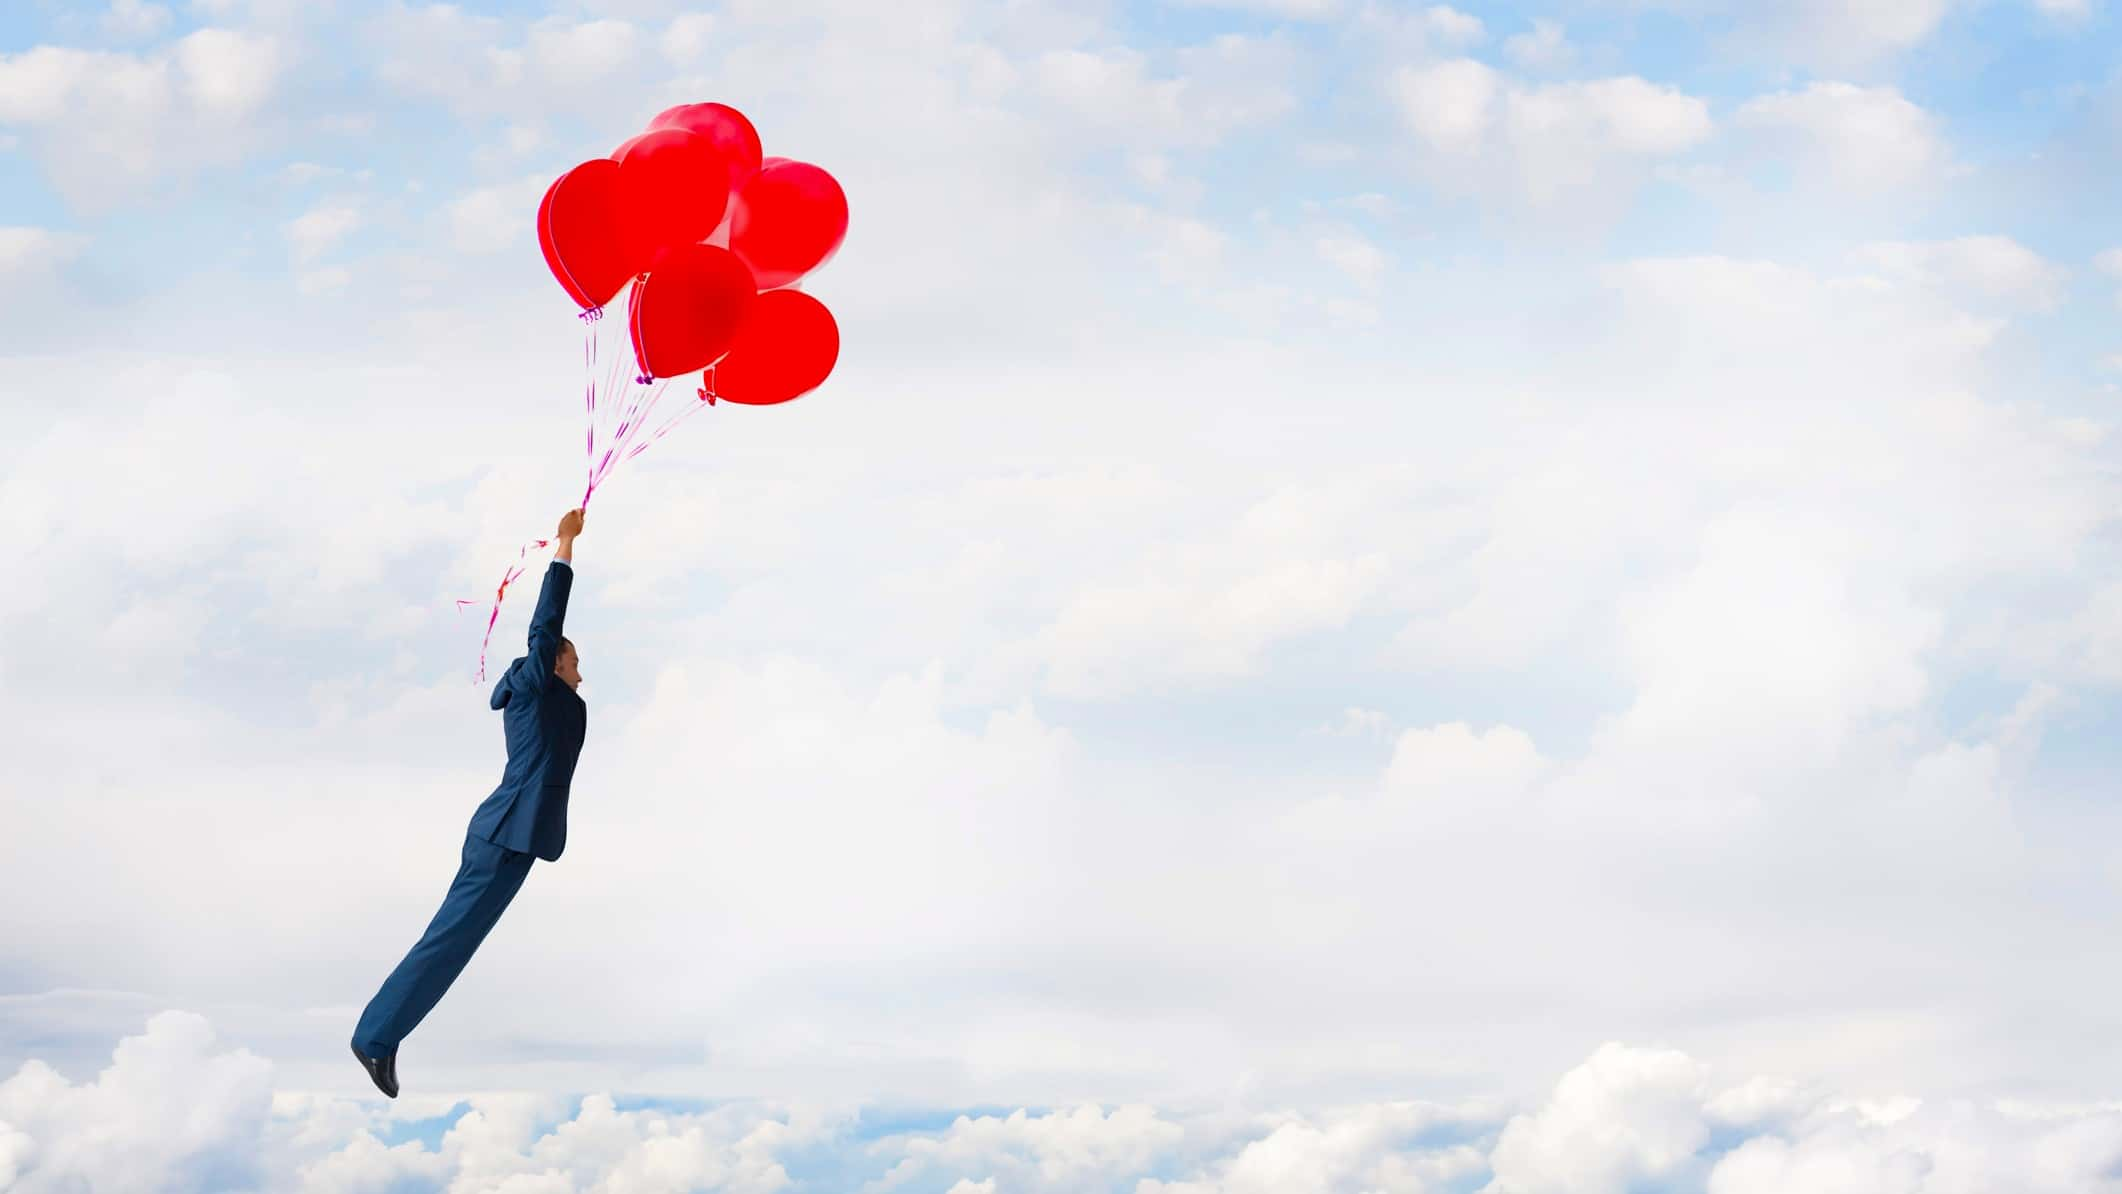 man holding bunch of balloons soaring through the air signifying asx share price rise